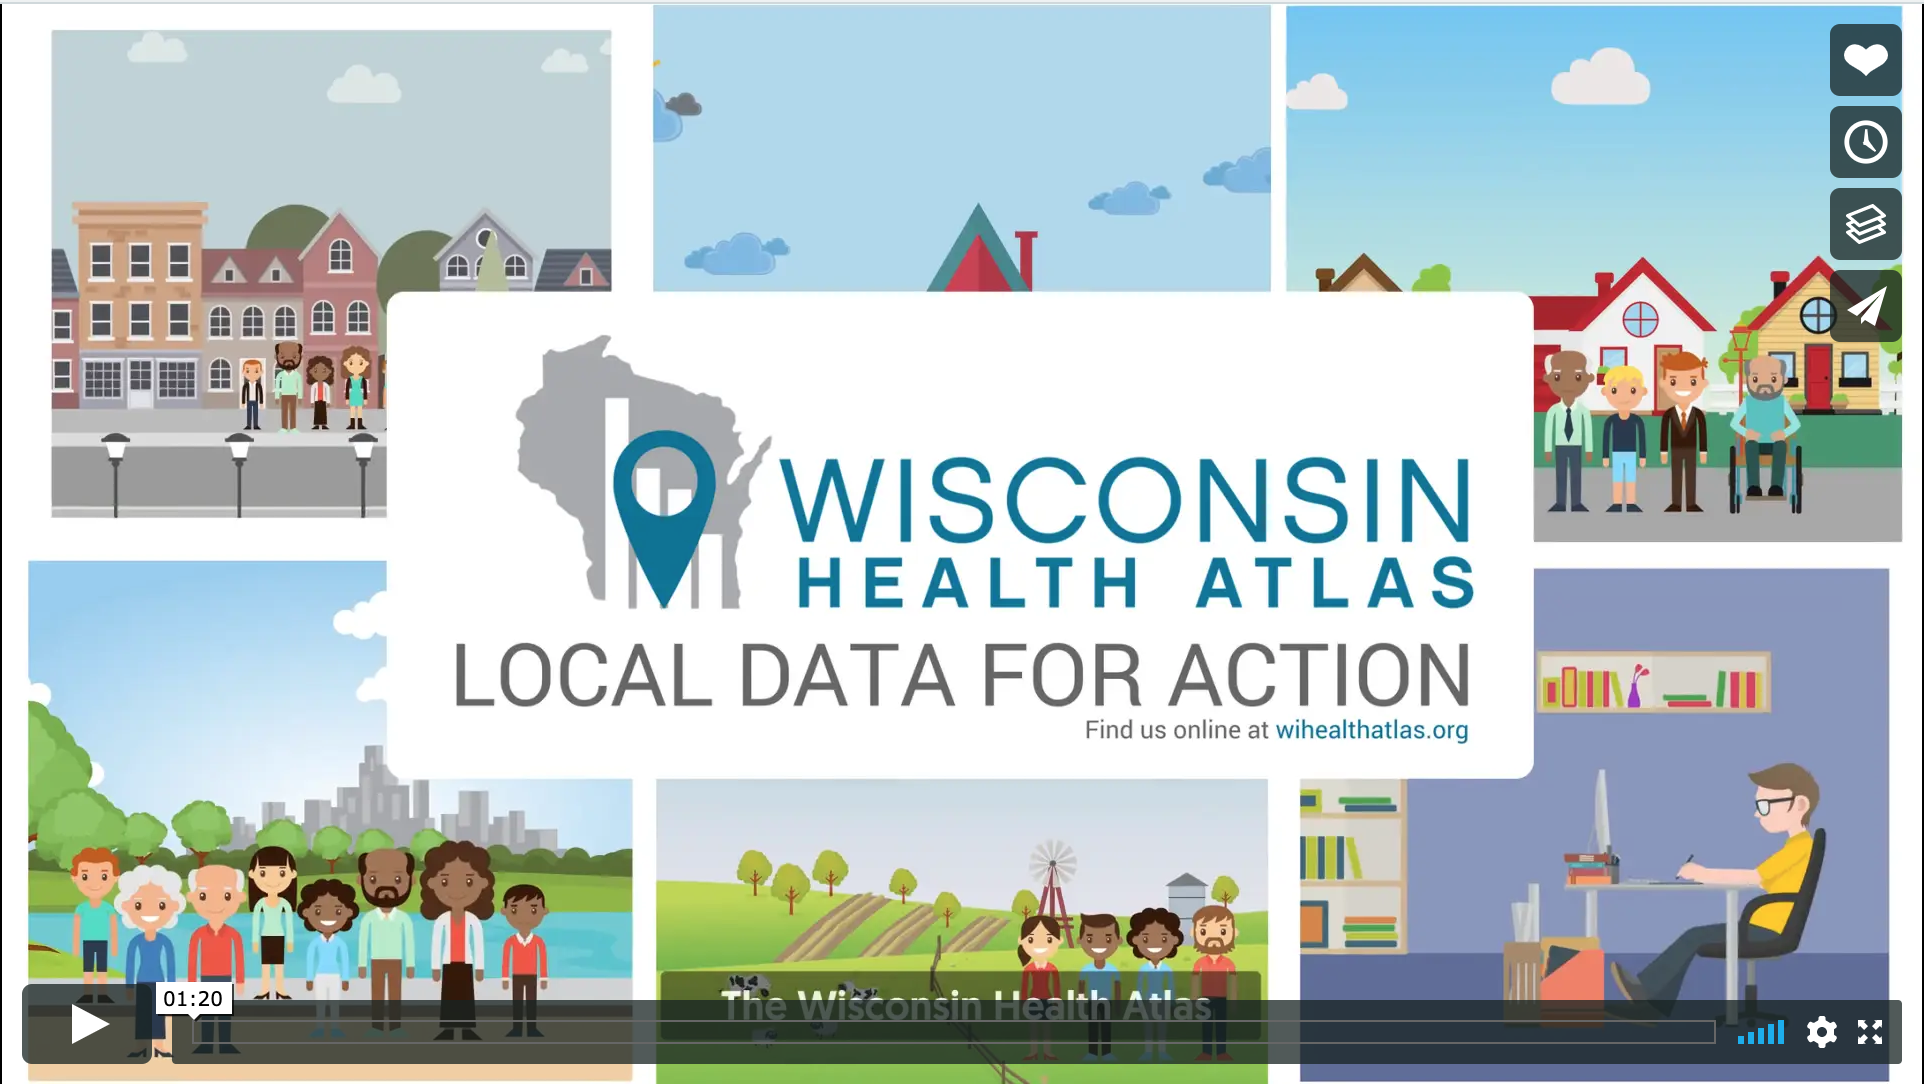 About the Wisconsin Health Atlas